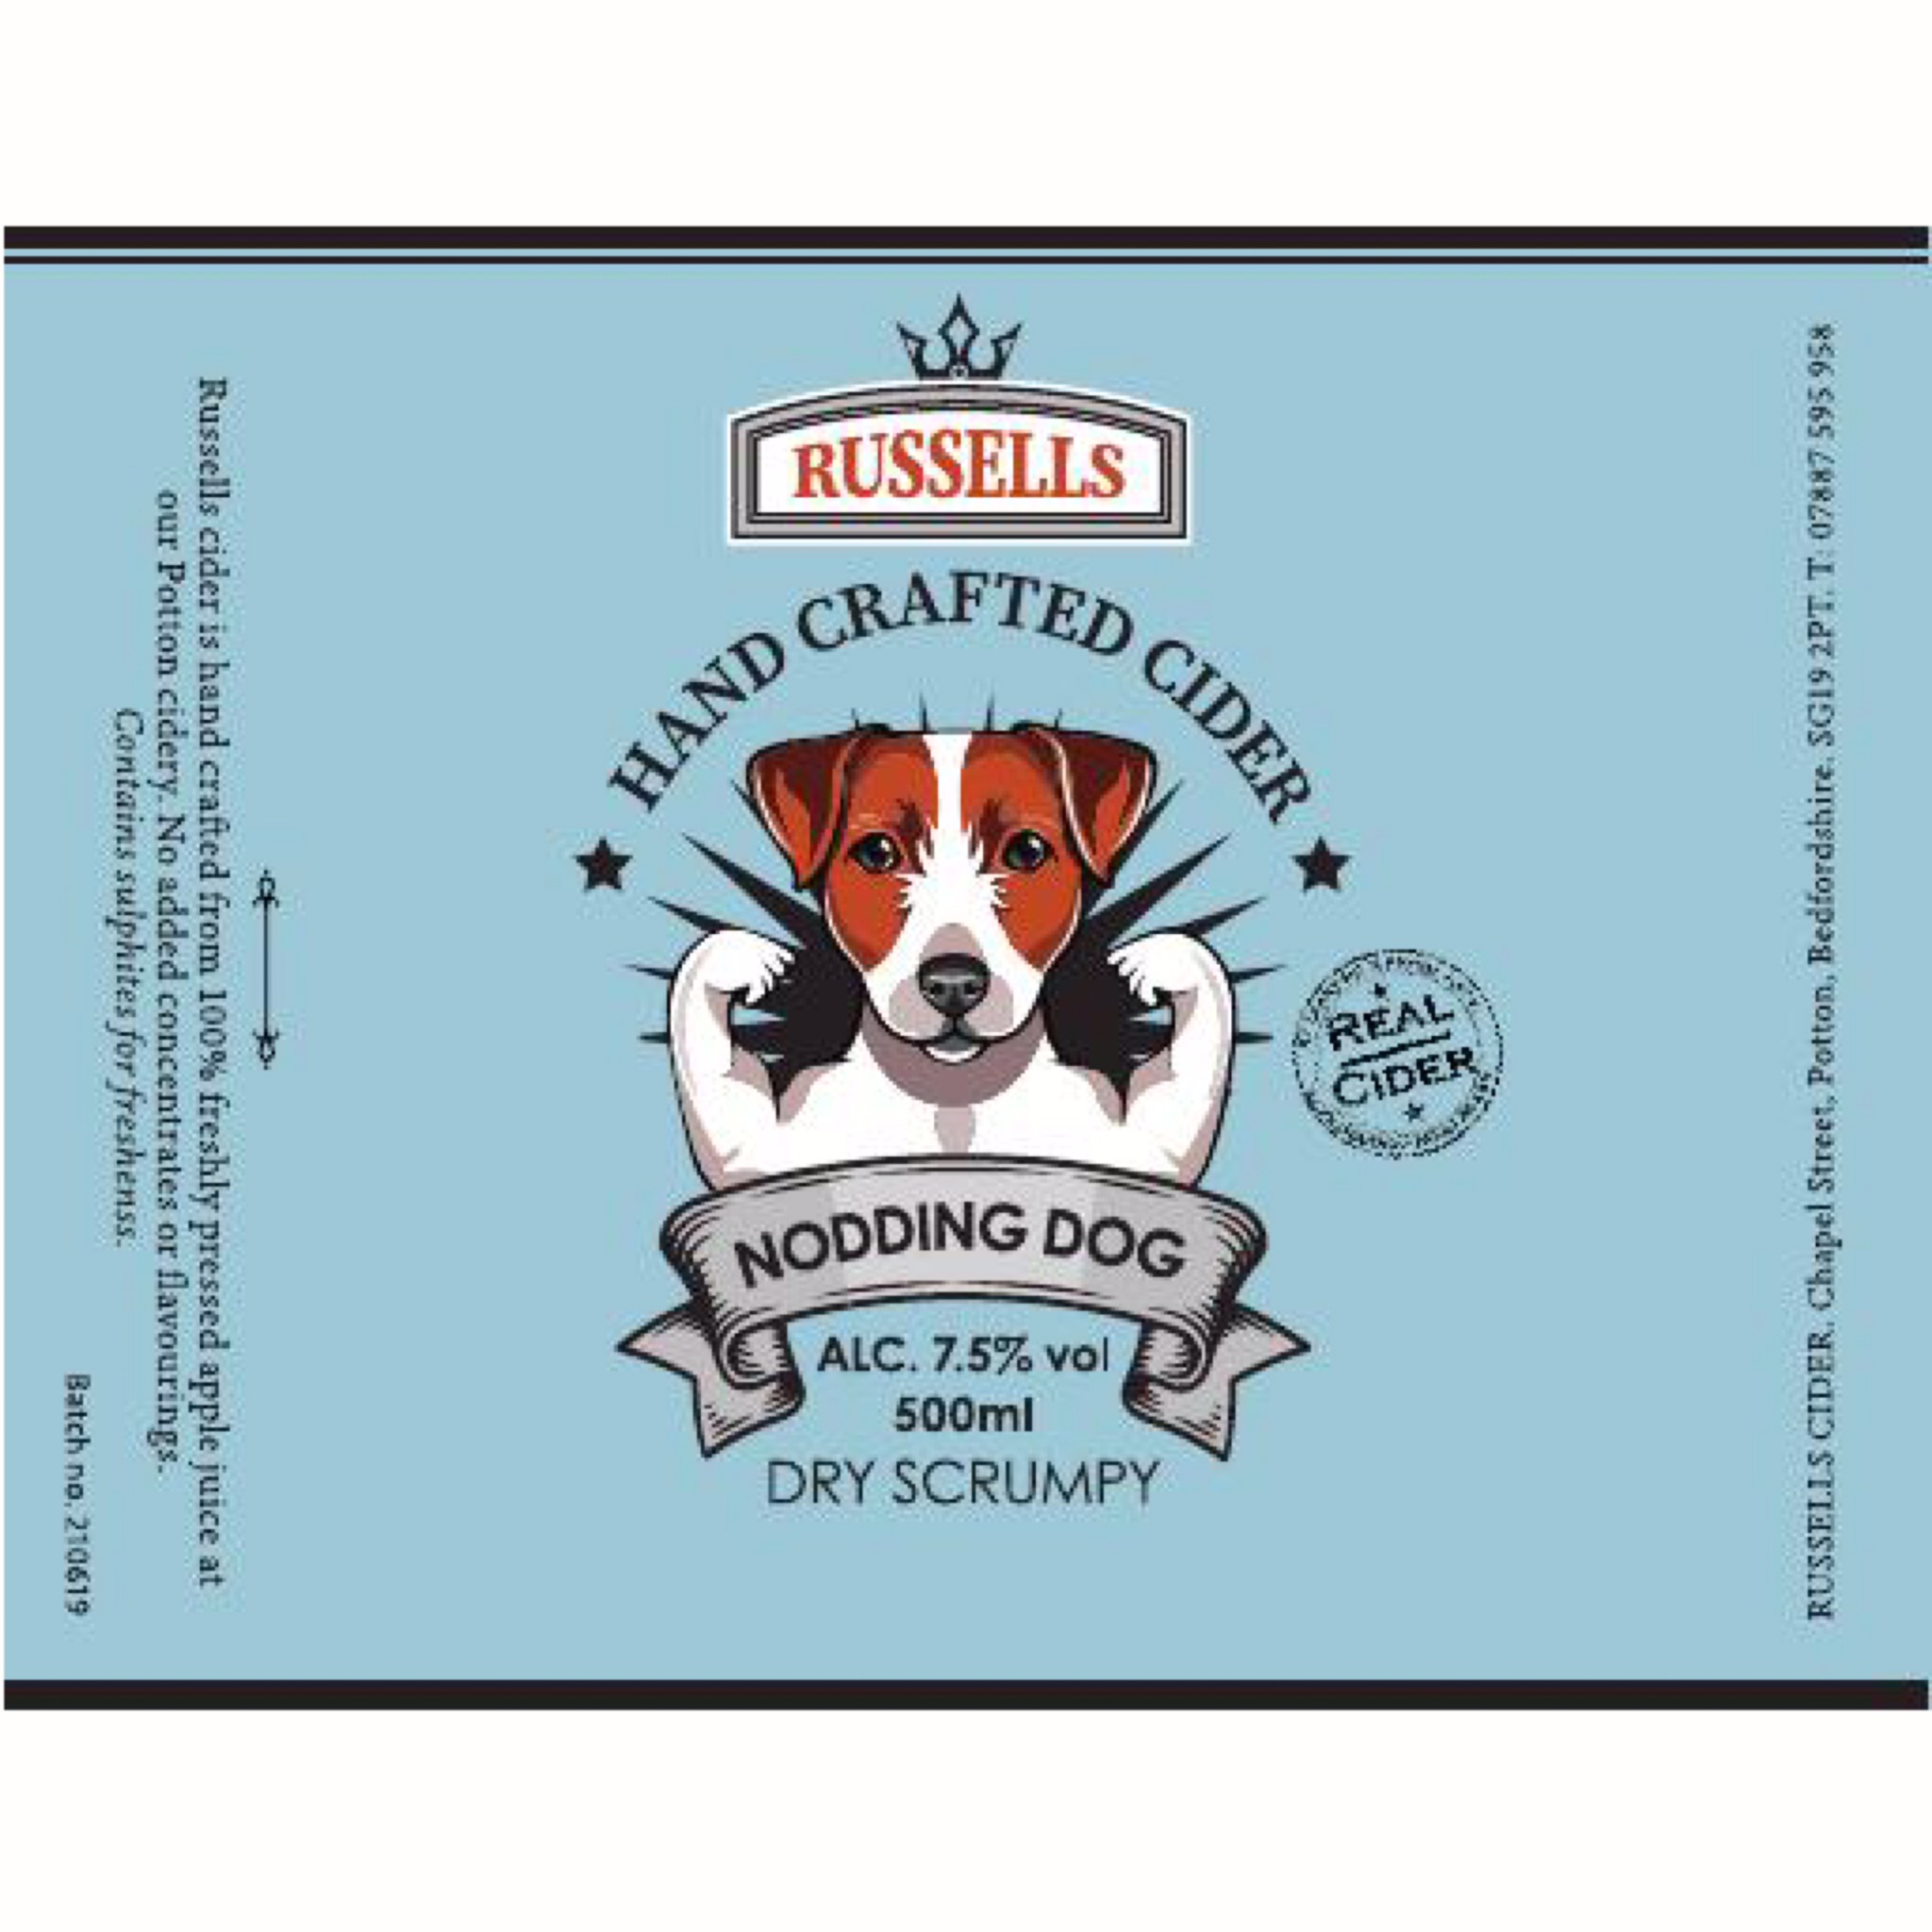 Nodding Dog Dry Scrumpy Cider 7.5% 500ml Russells Hand Crafted Cider